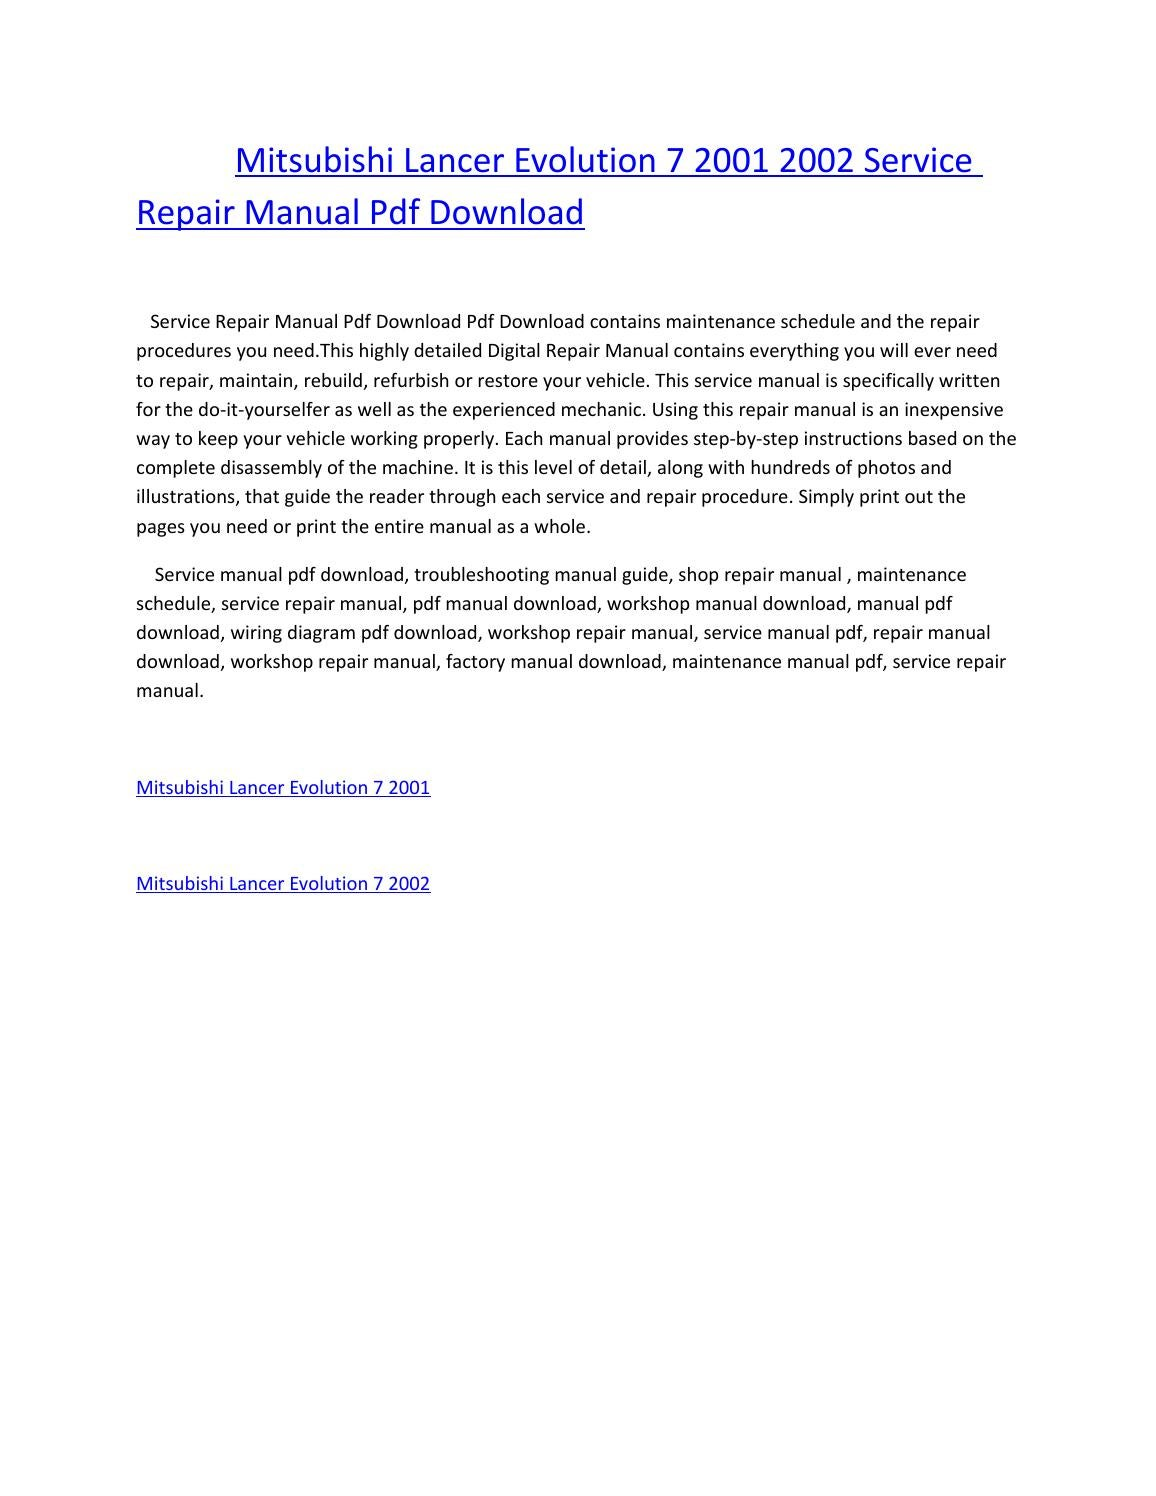 Mitsubishi lancer evolution 7 2001 2002 service repair manual pdf download  by amurgului - issuu